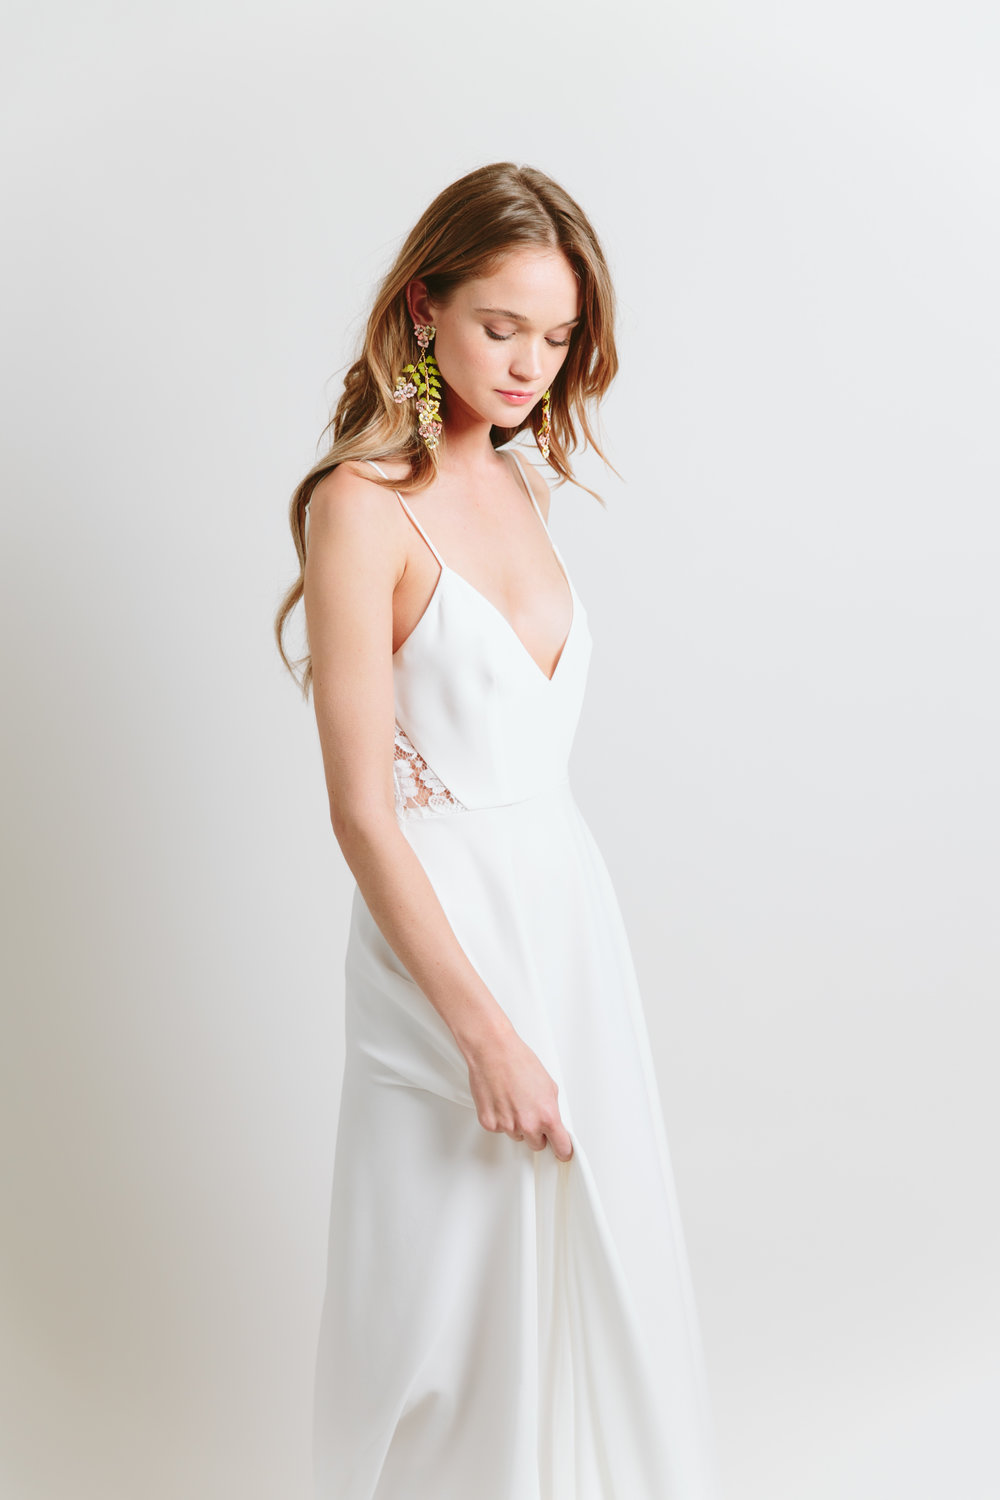 sarah seven minimal wedding dress